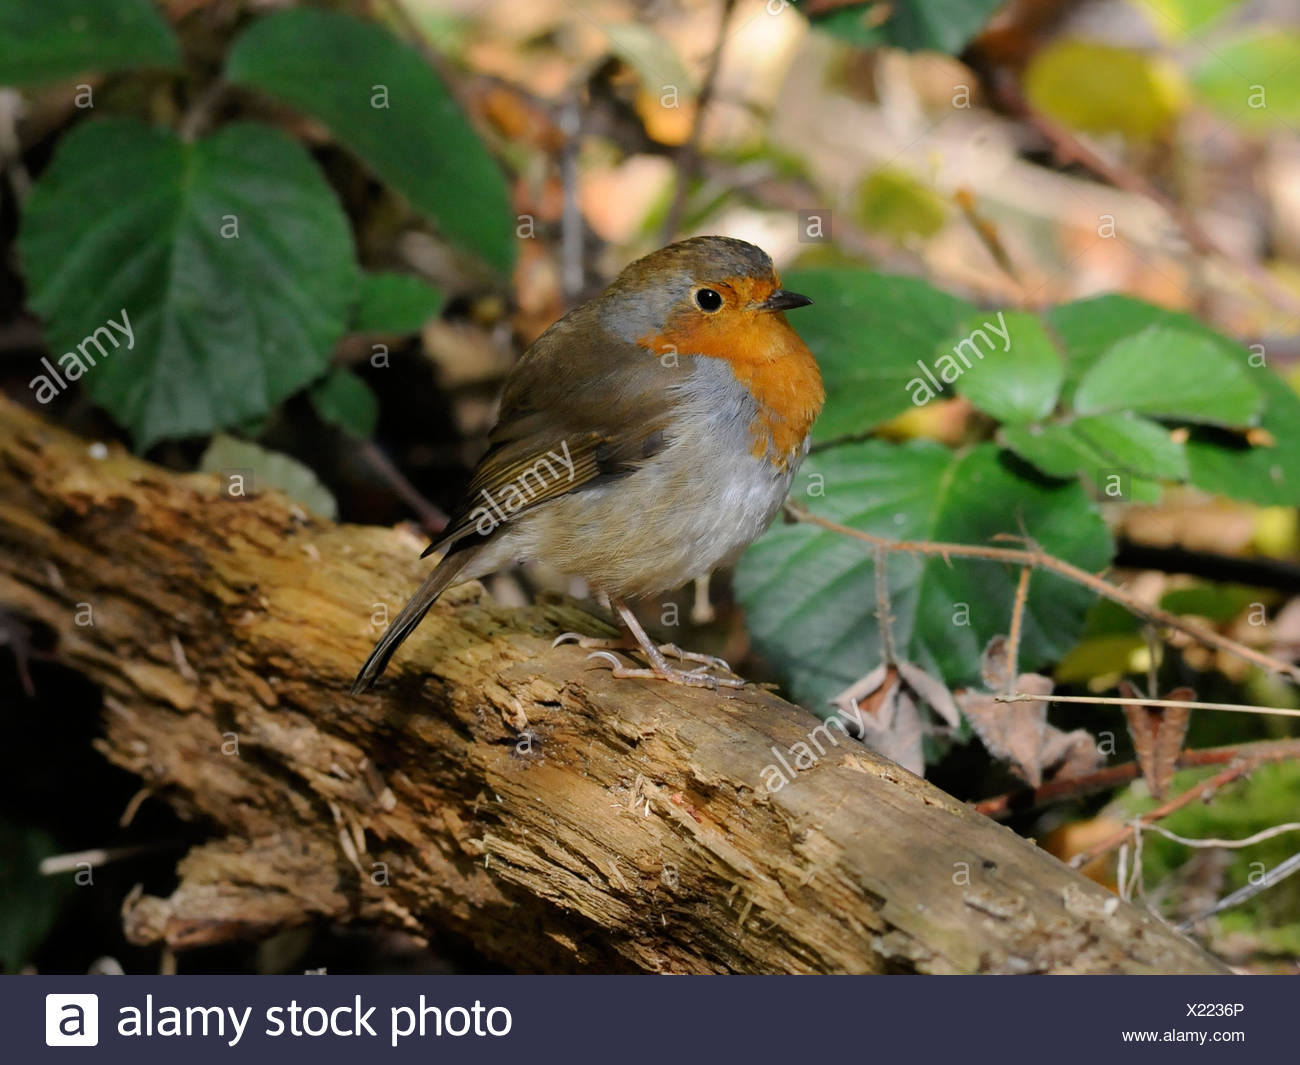 A small juvenile red robin sitting on a branch - Stock Image